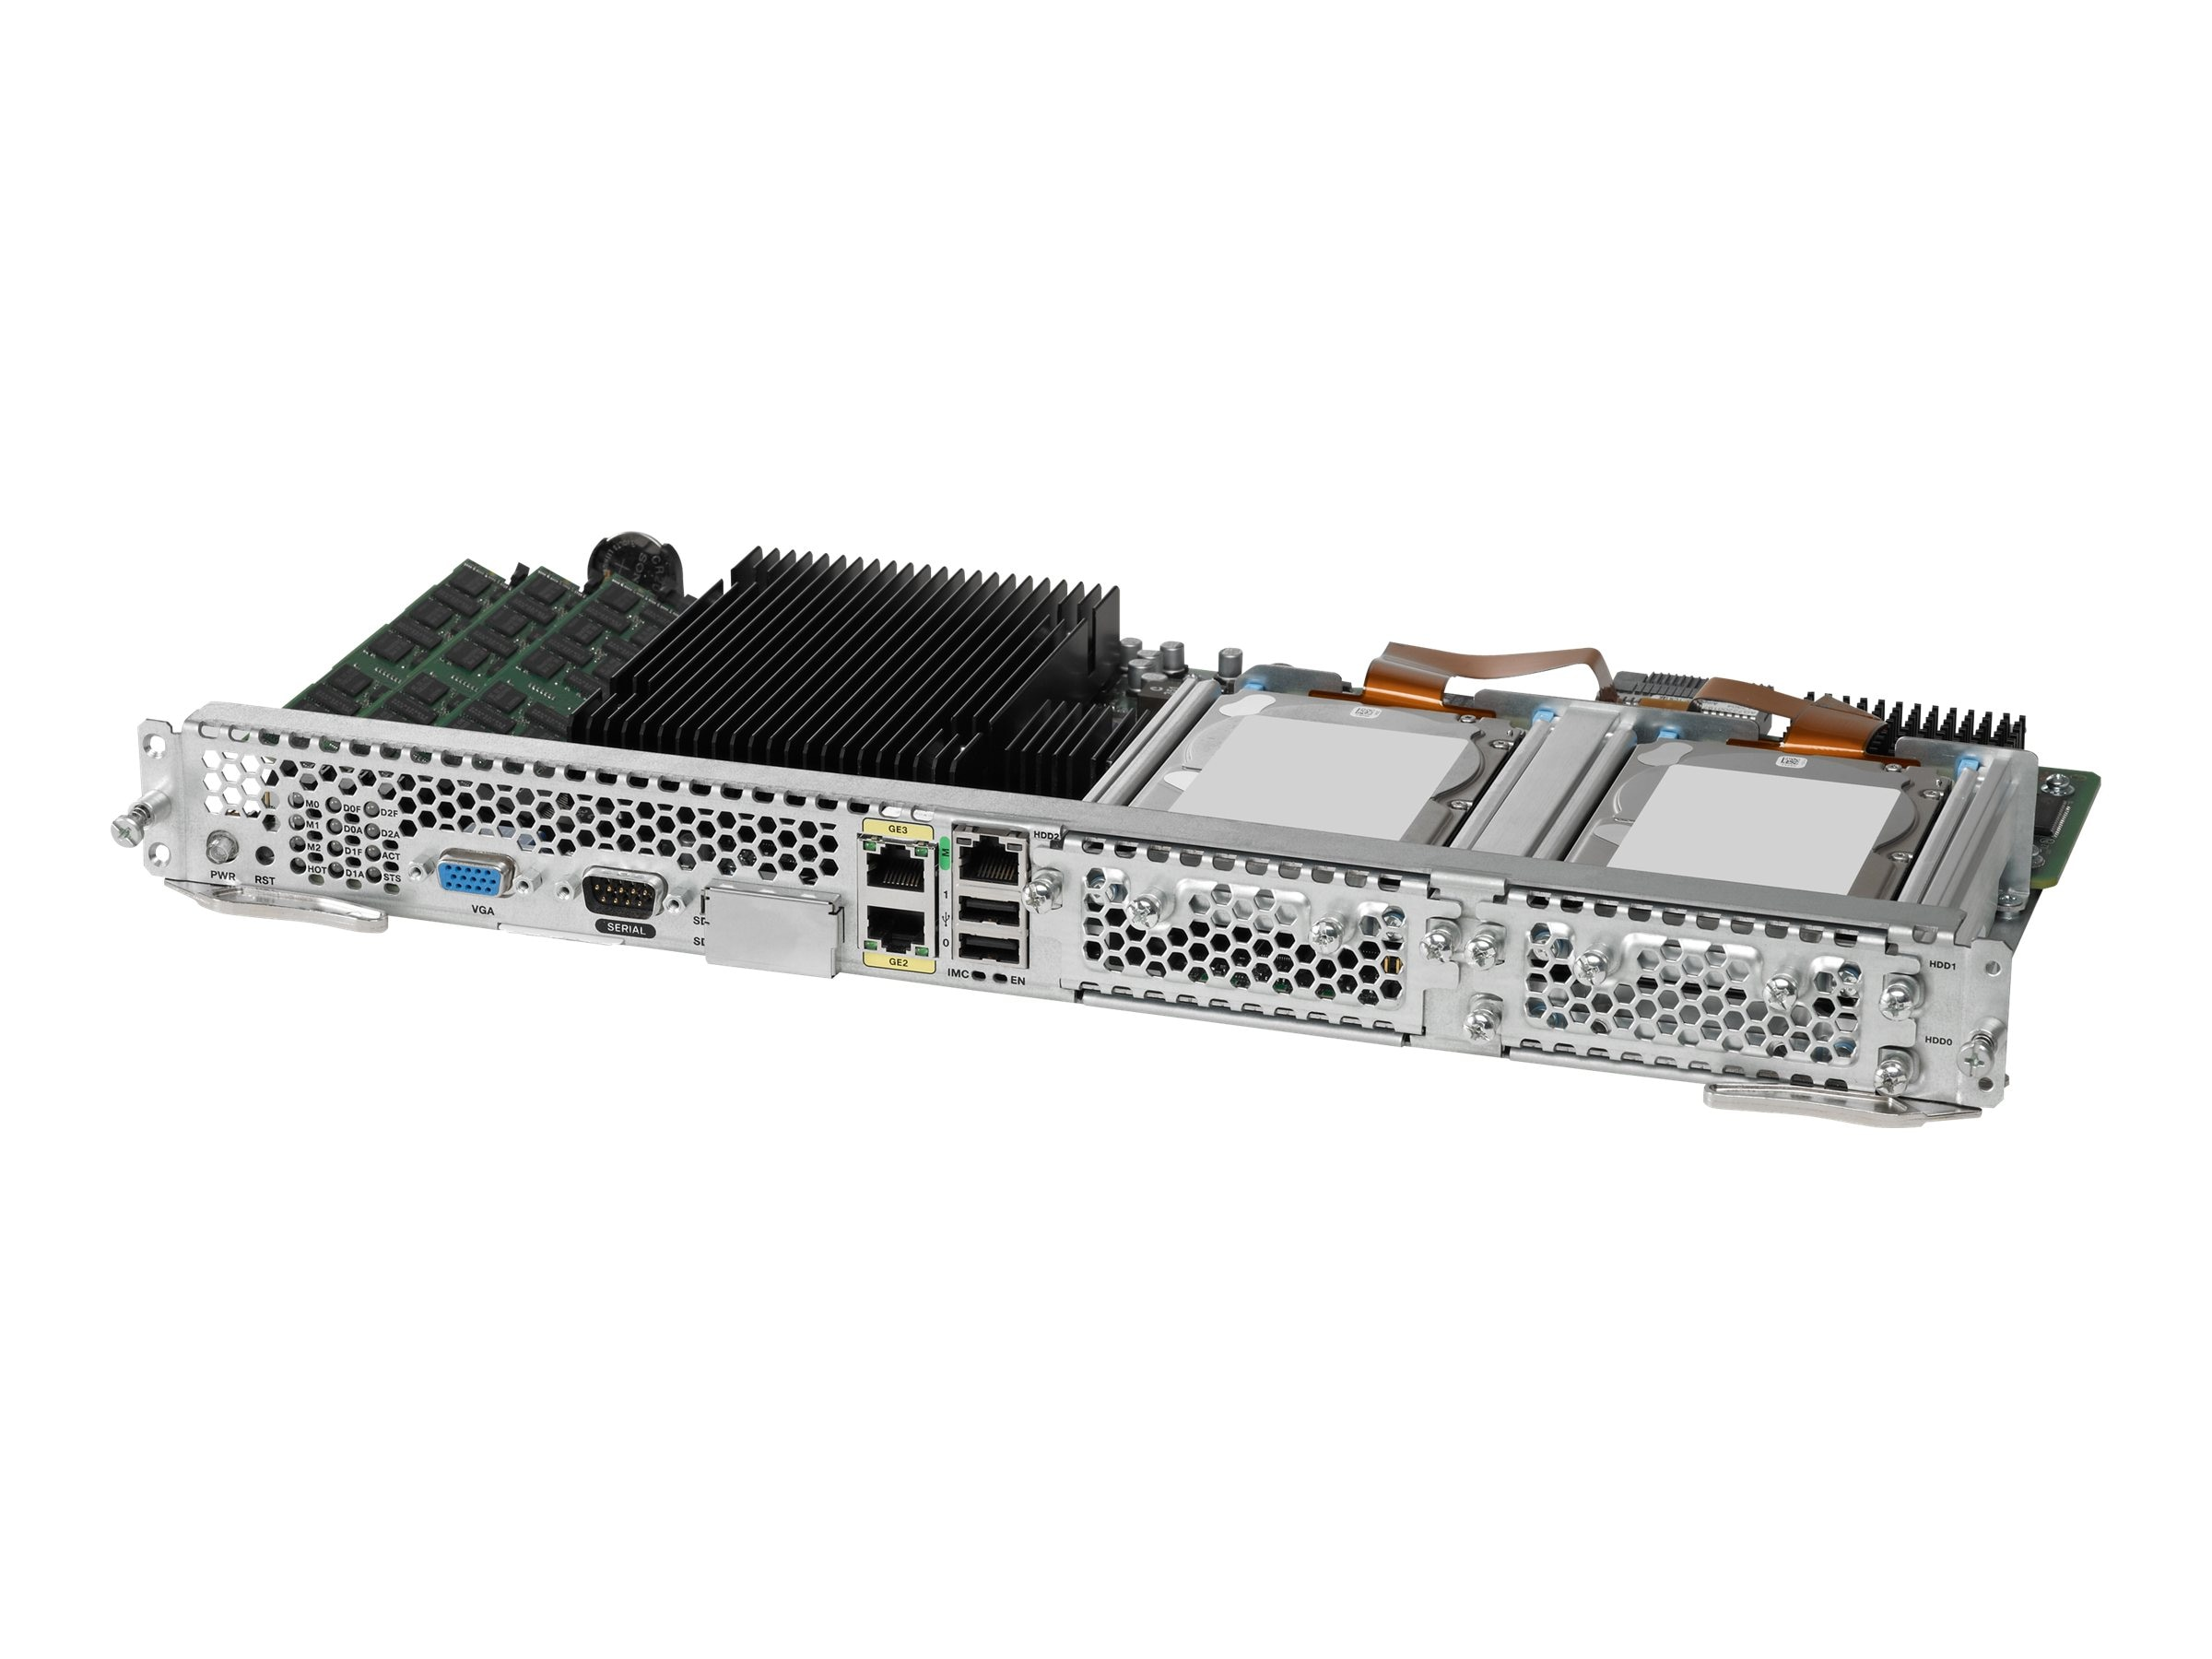 Cisco UCS E-Series Double-Wide Server Blades Xeon 6C E5-2400 8GB PCIe 2xSD Cards, UCS-E160DP-M1/K9, 18106903, Servers - Blade